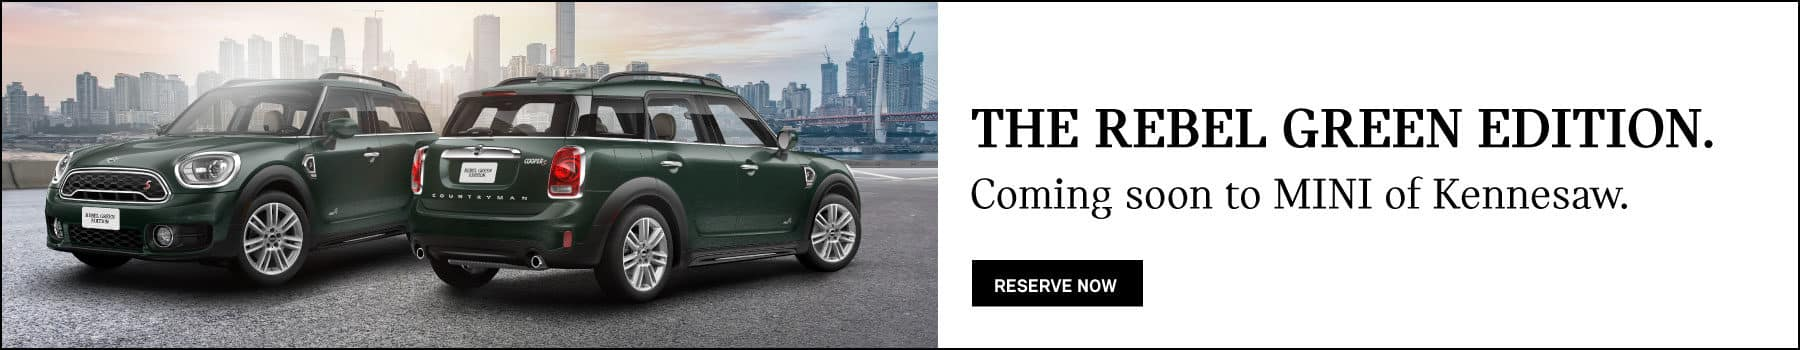 The Rebel Green edition. Coming soon to MINI of Kennesaw. Reserve now button. Two rebel green MINI Cooper S countryman ALL4's parked with city scape in background.